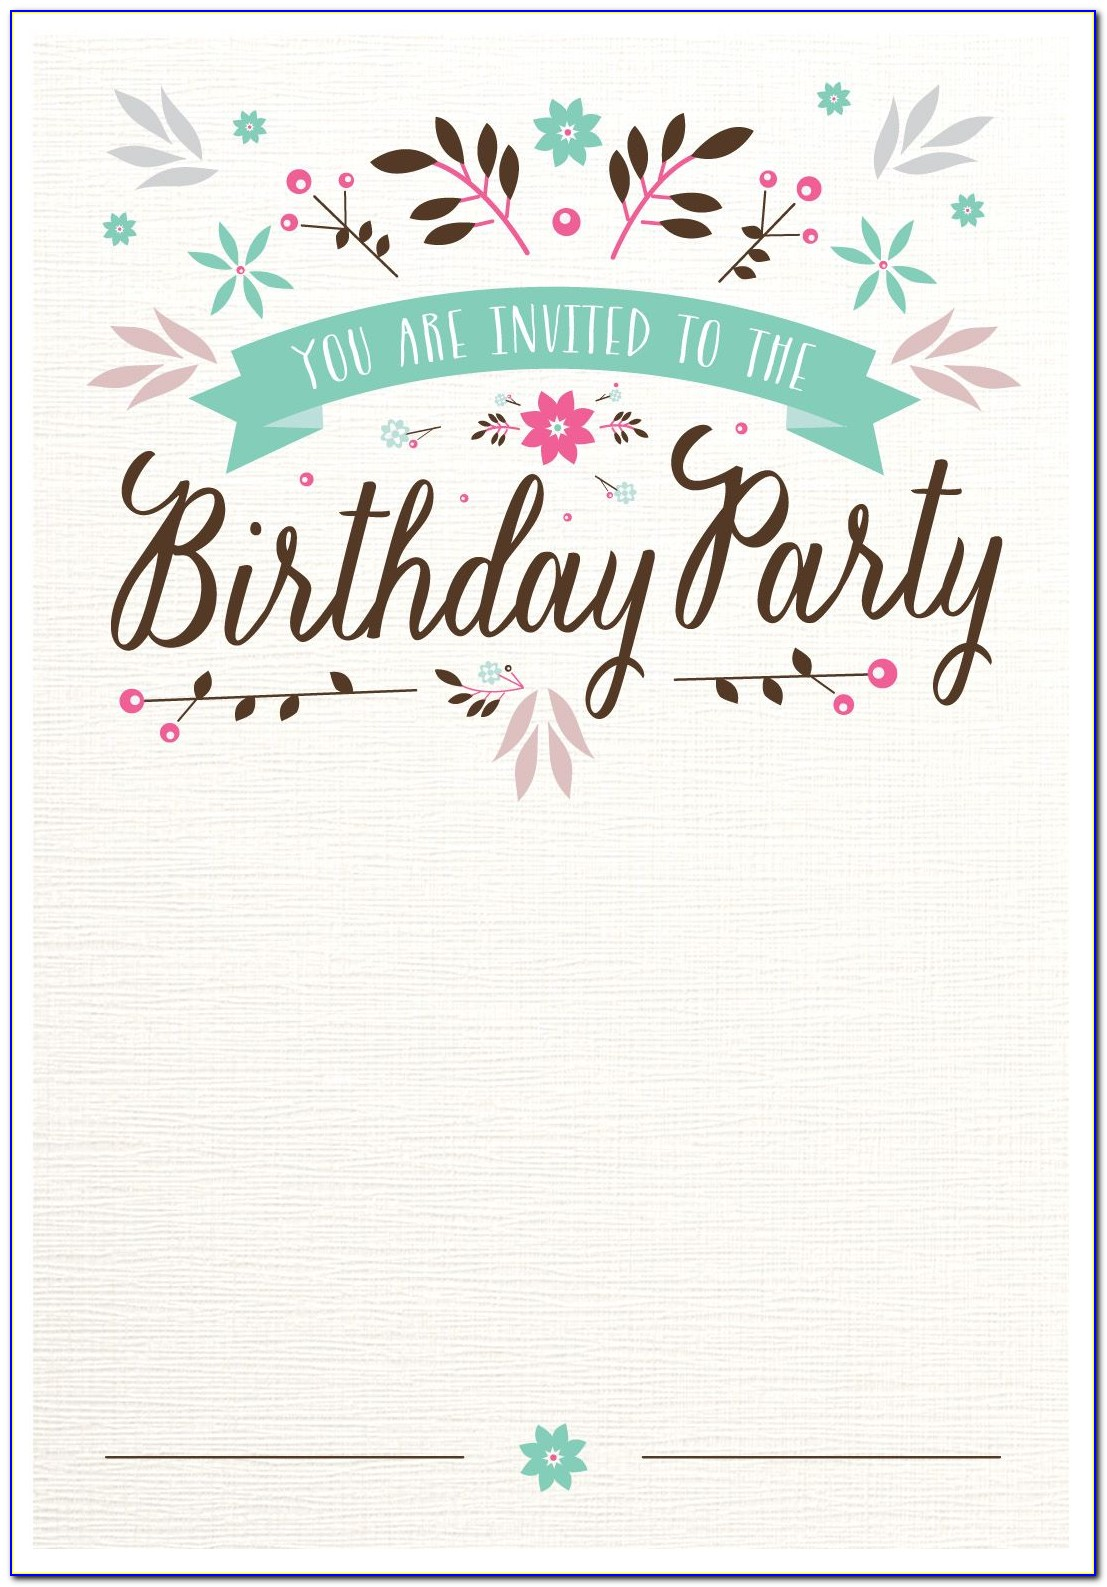 21st Birthday Party Invitation Card Template